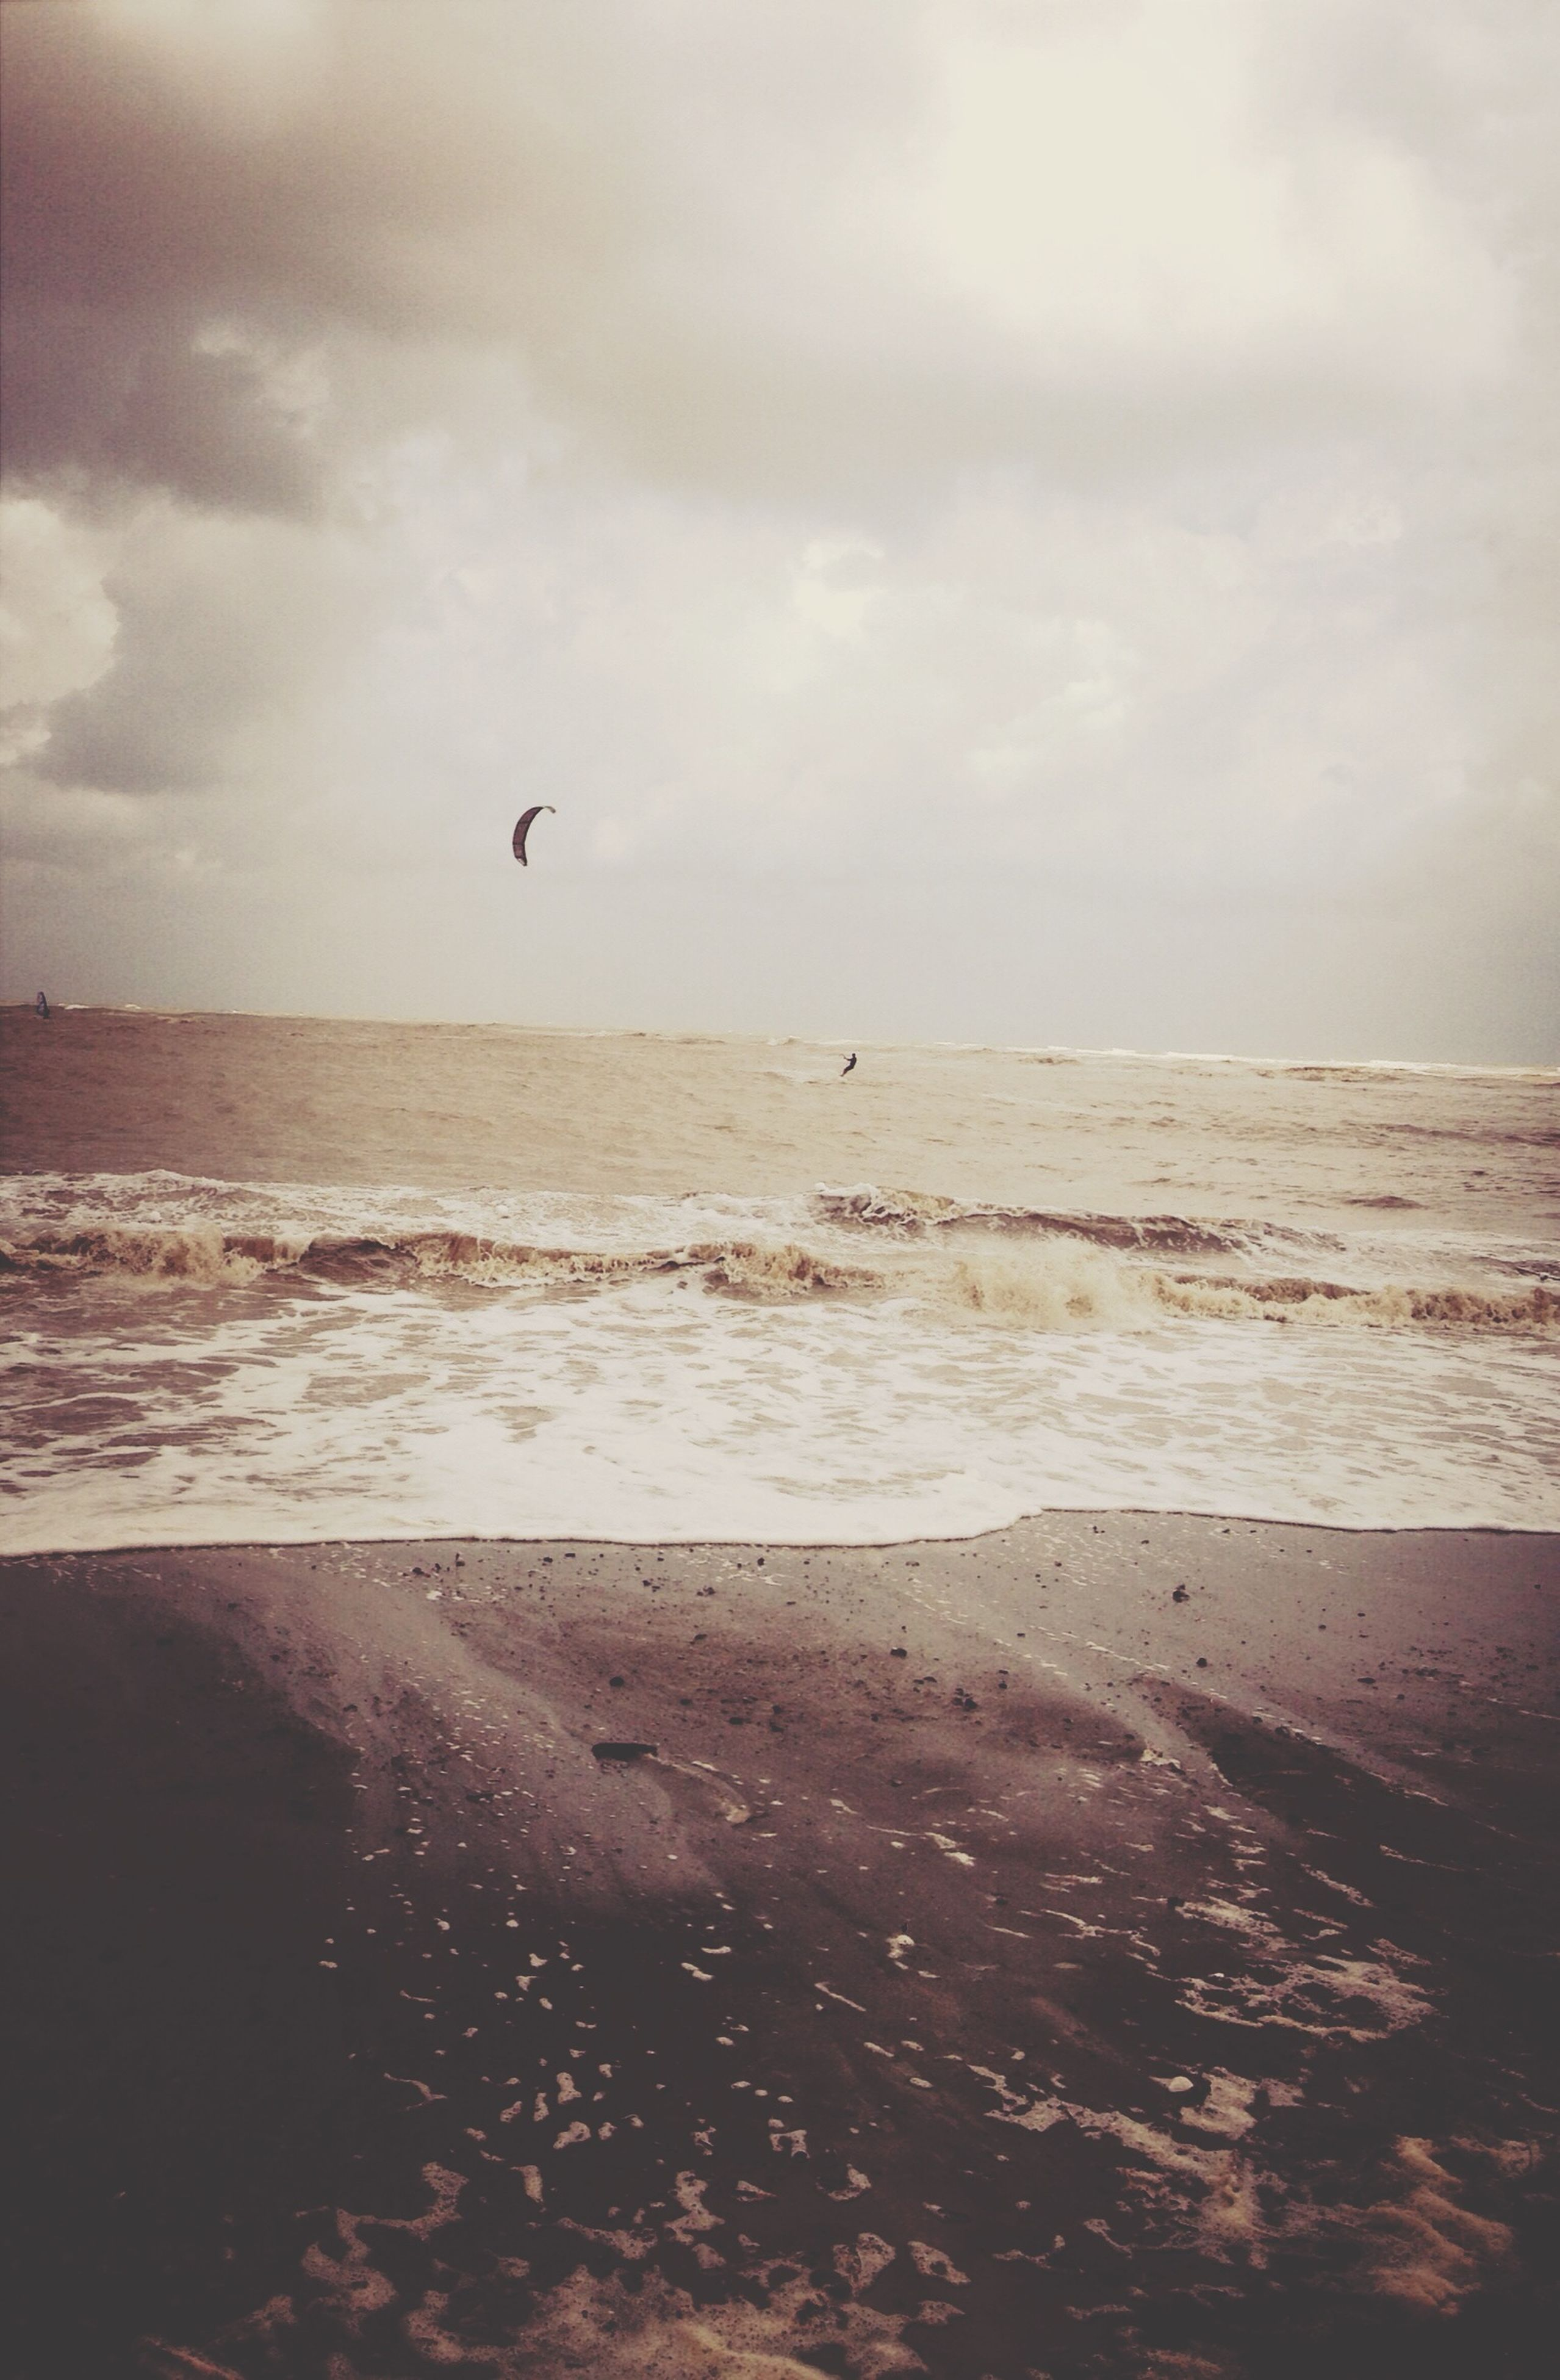 sea, bird, water, beach, sky, flying, horizon over water, animal themes, animals in the wild, shore, cloud - sky, wildlife, scenics, sand, nature, tranquility, tranquil scene, beauty in nature, one animal, seagull